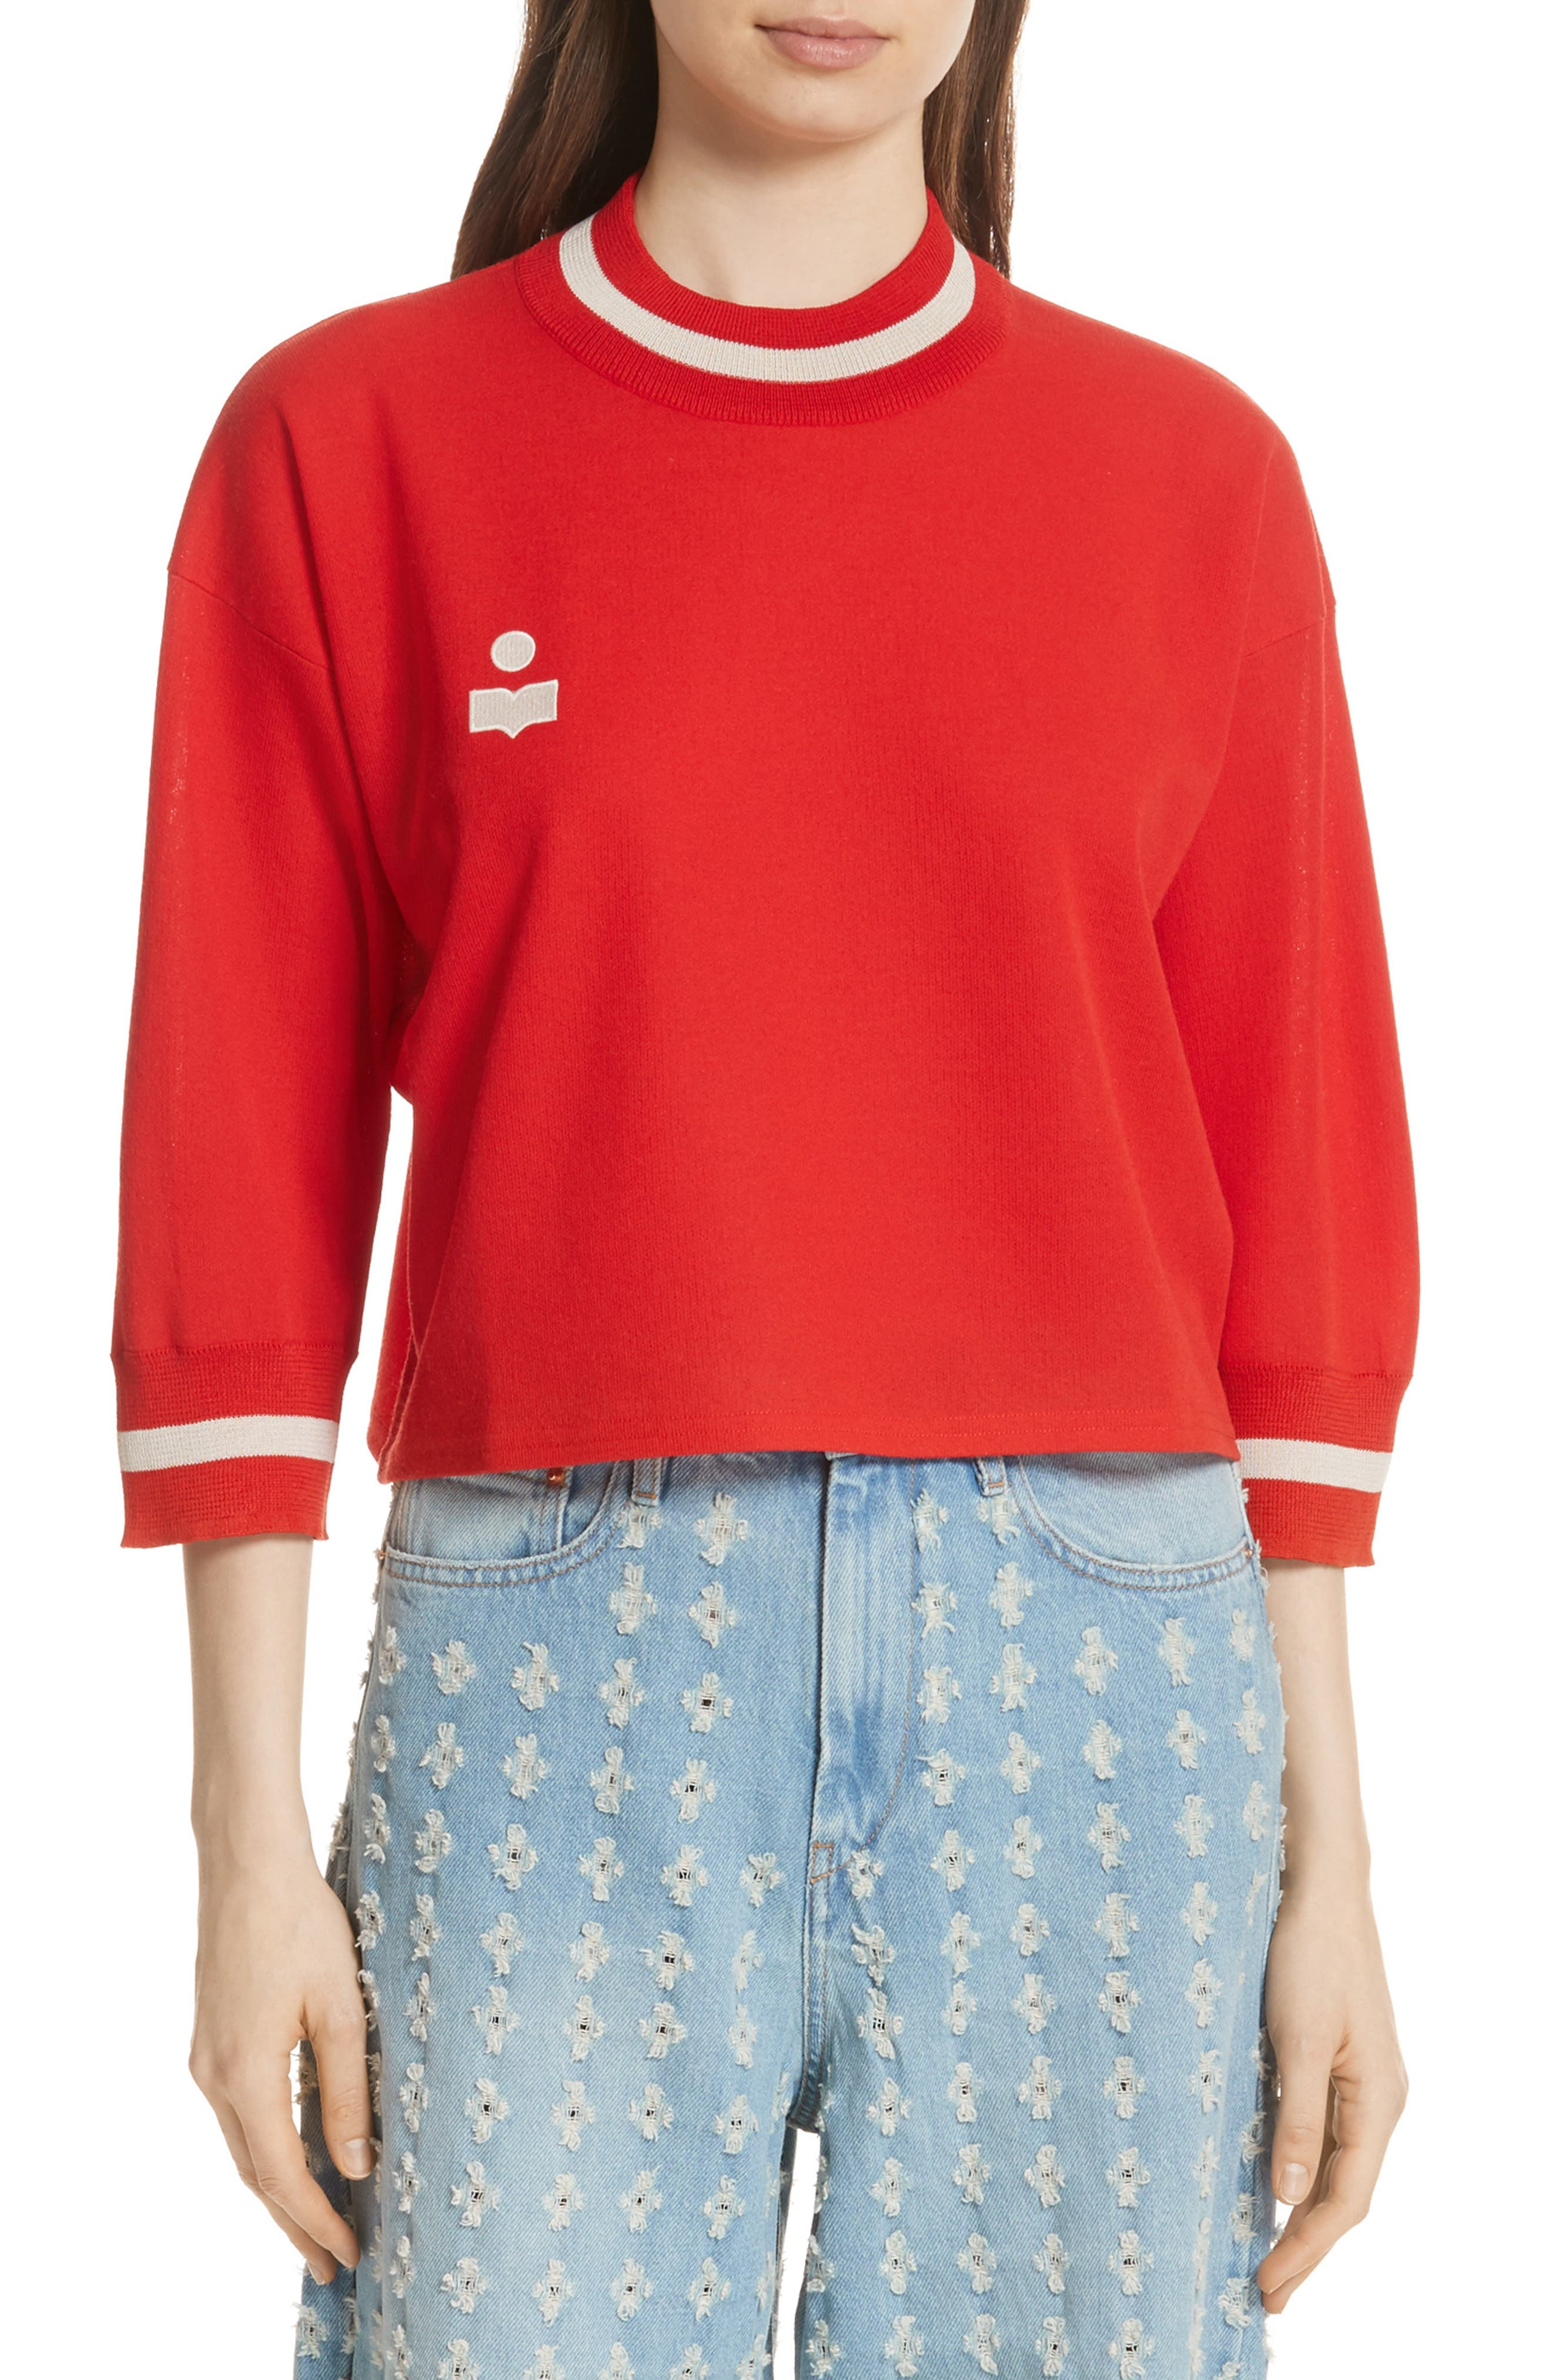 Dayton Crop Sweatshirt,                         Main,                         color, 600